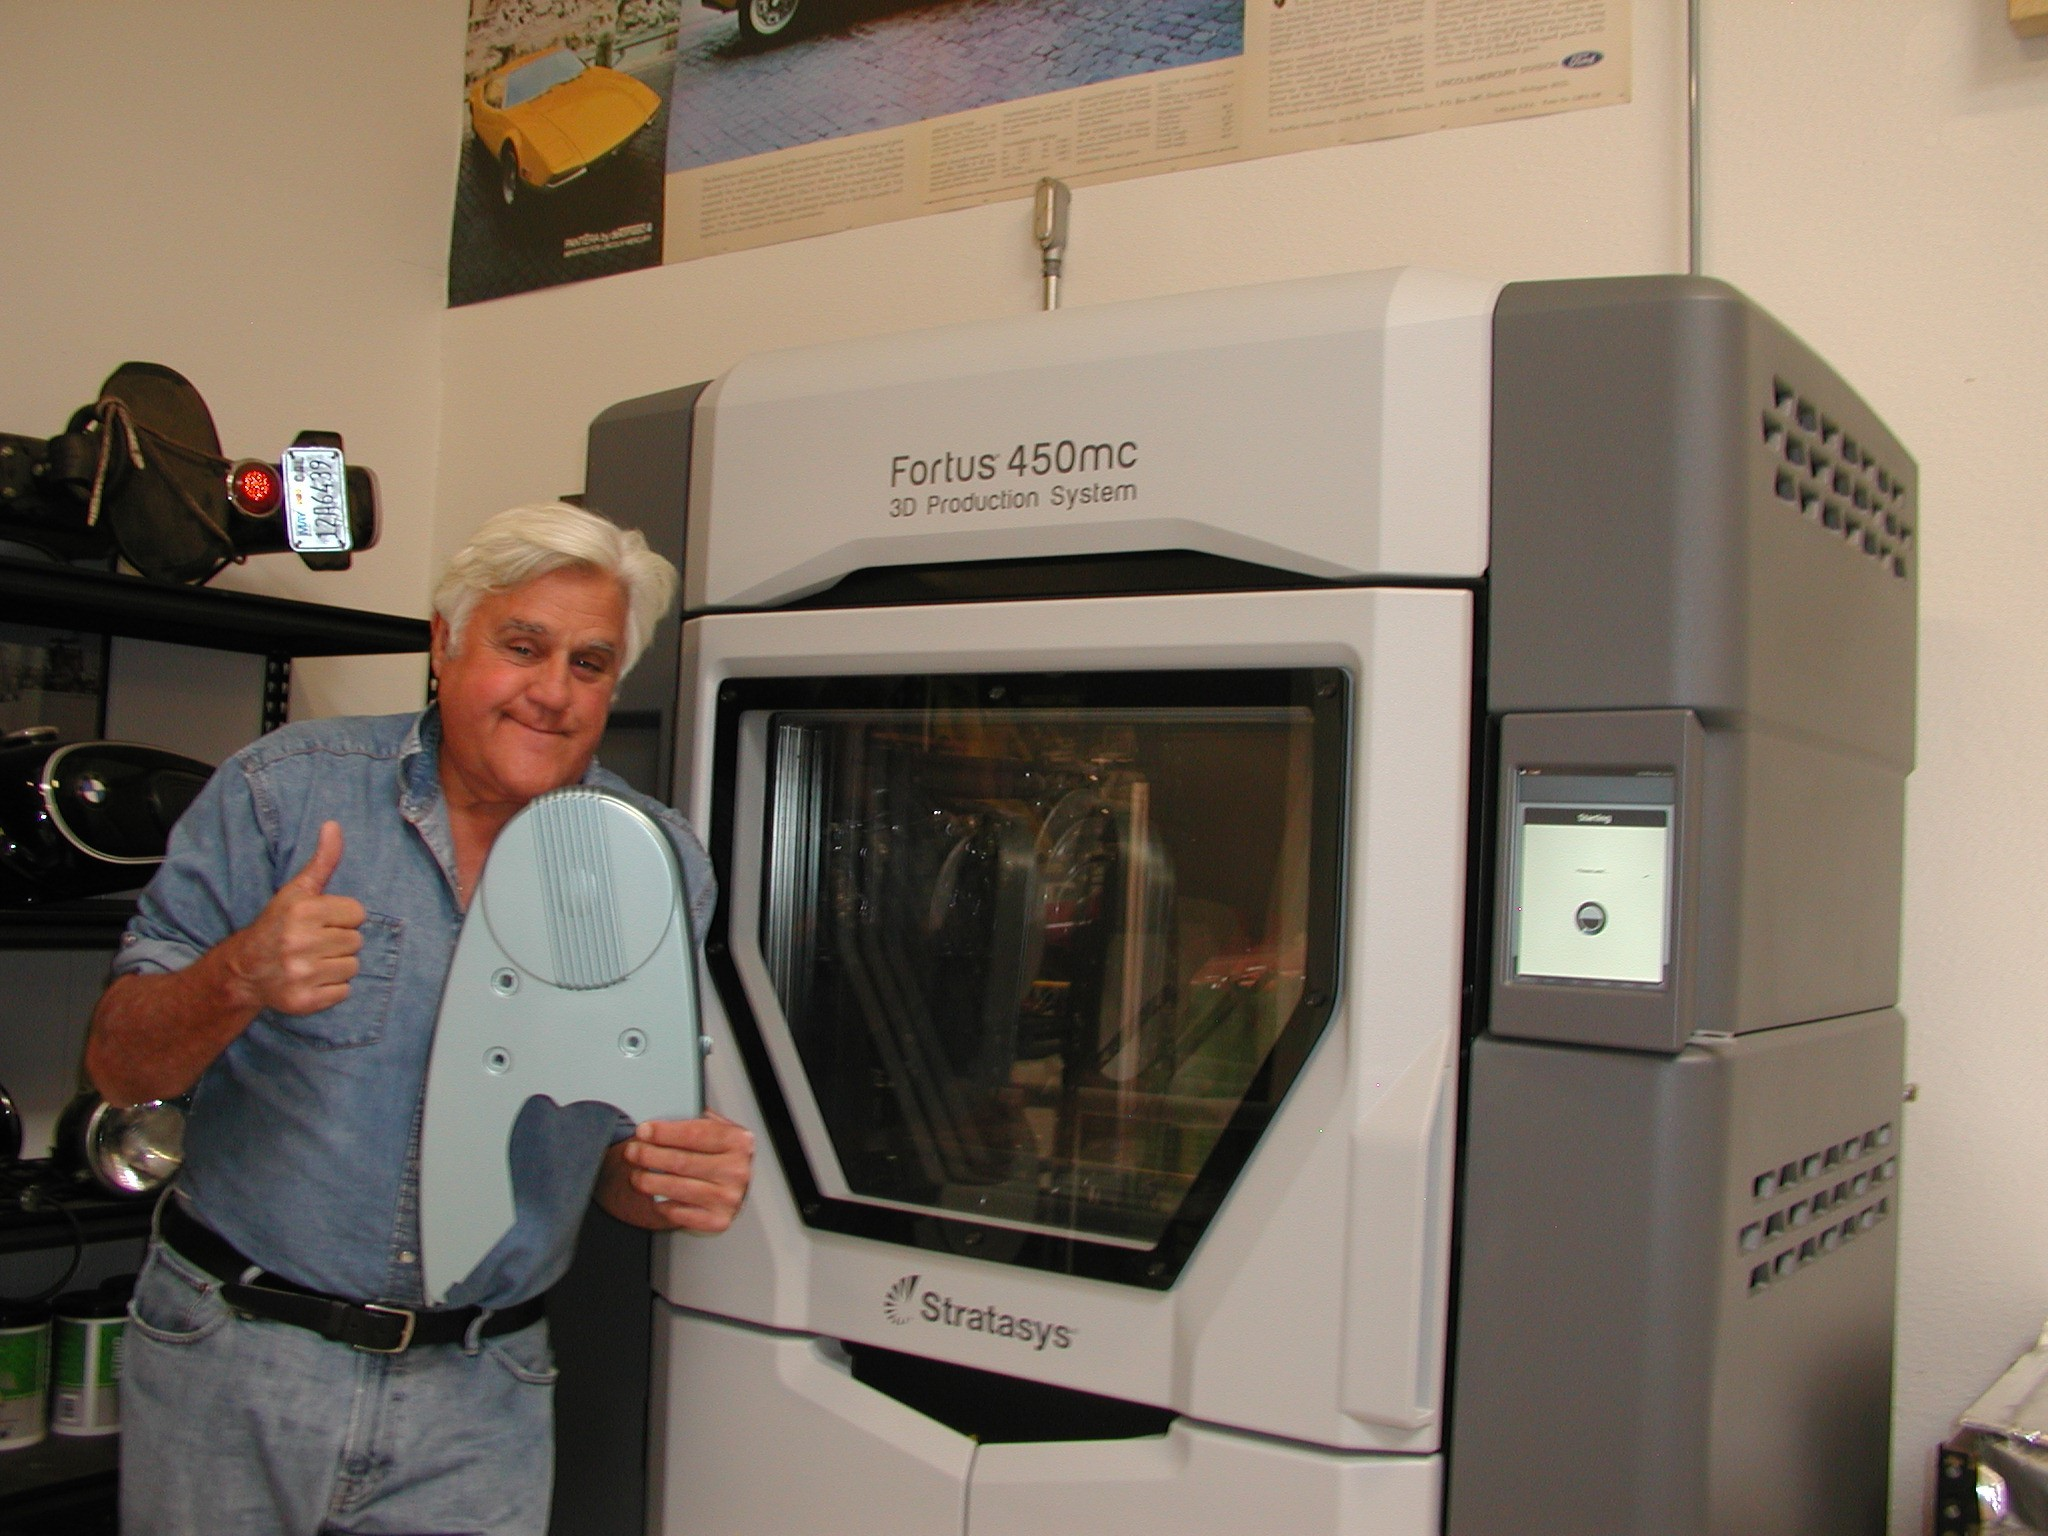 Jay Leno poses with 3D printed part fabricated from Stratasys Fortus 450mc.